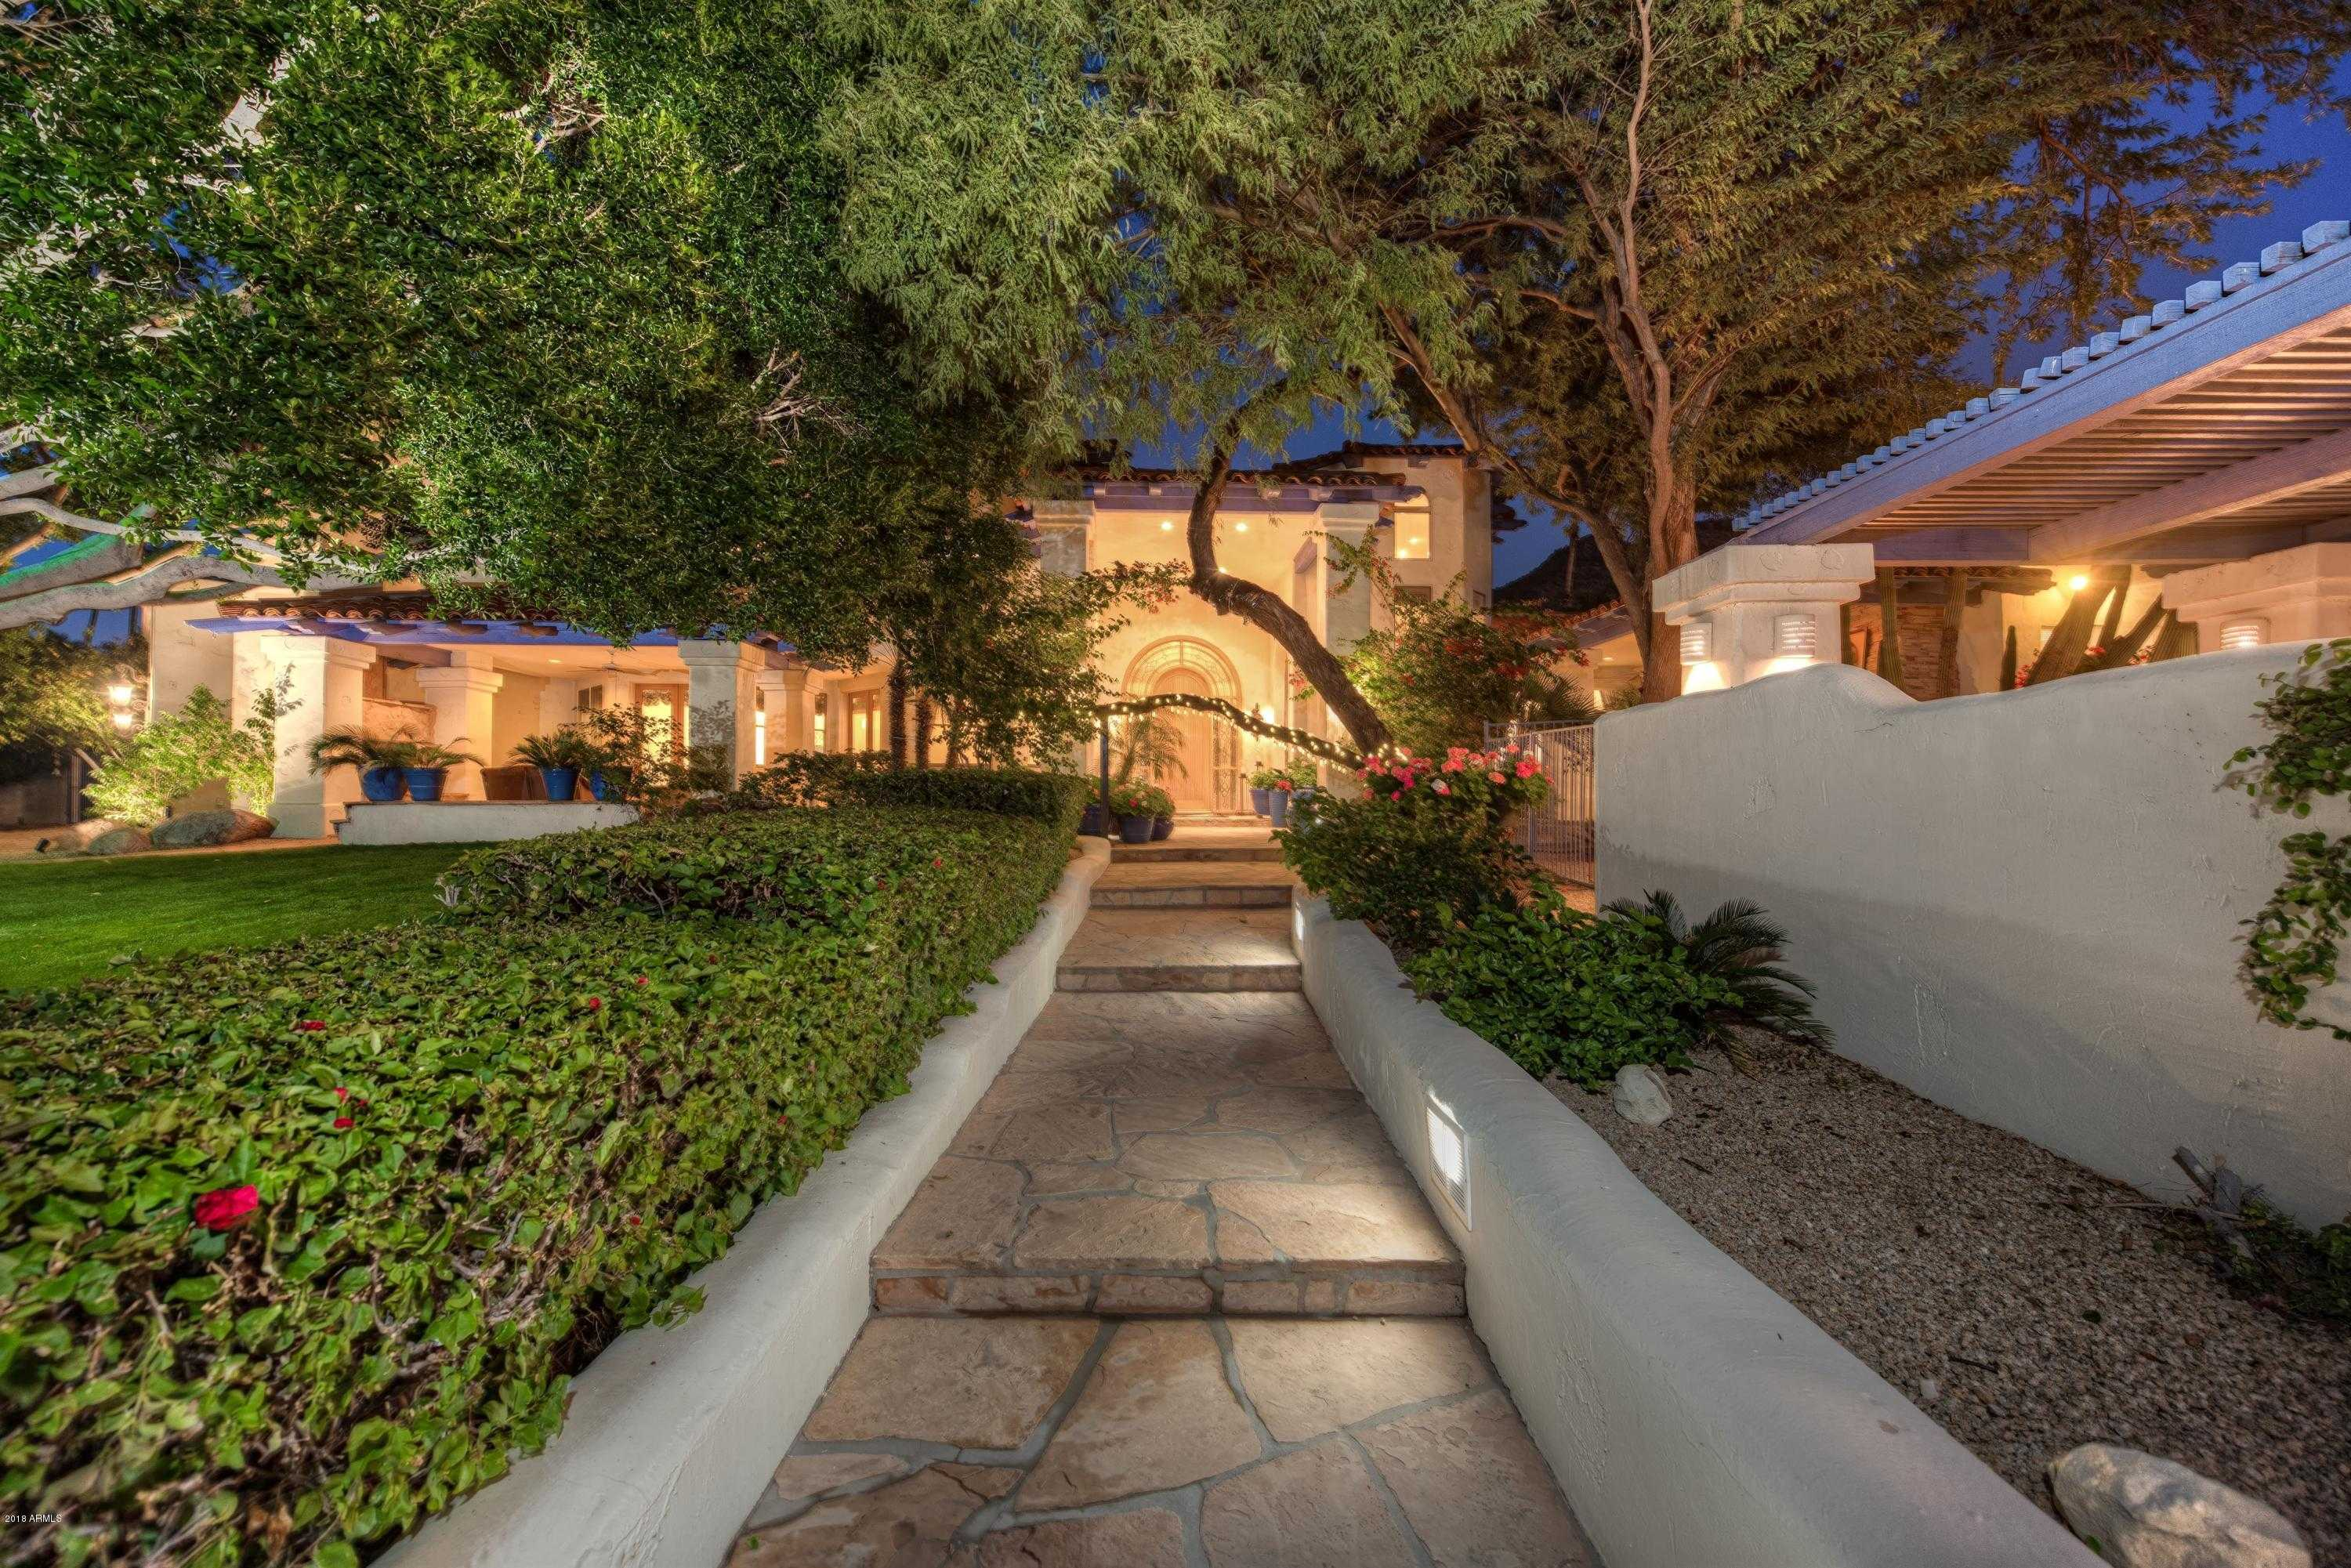 $2,750,000 - 5Br/5Ba - Home for Sale in Paradise Hills, Paradise Valley